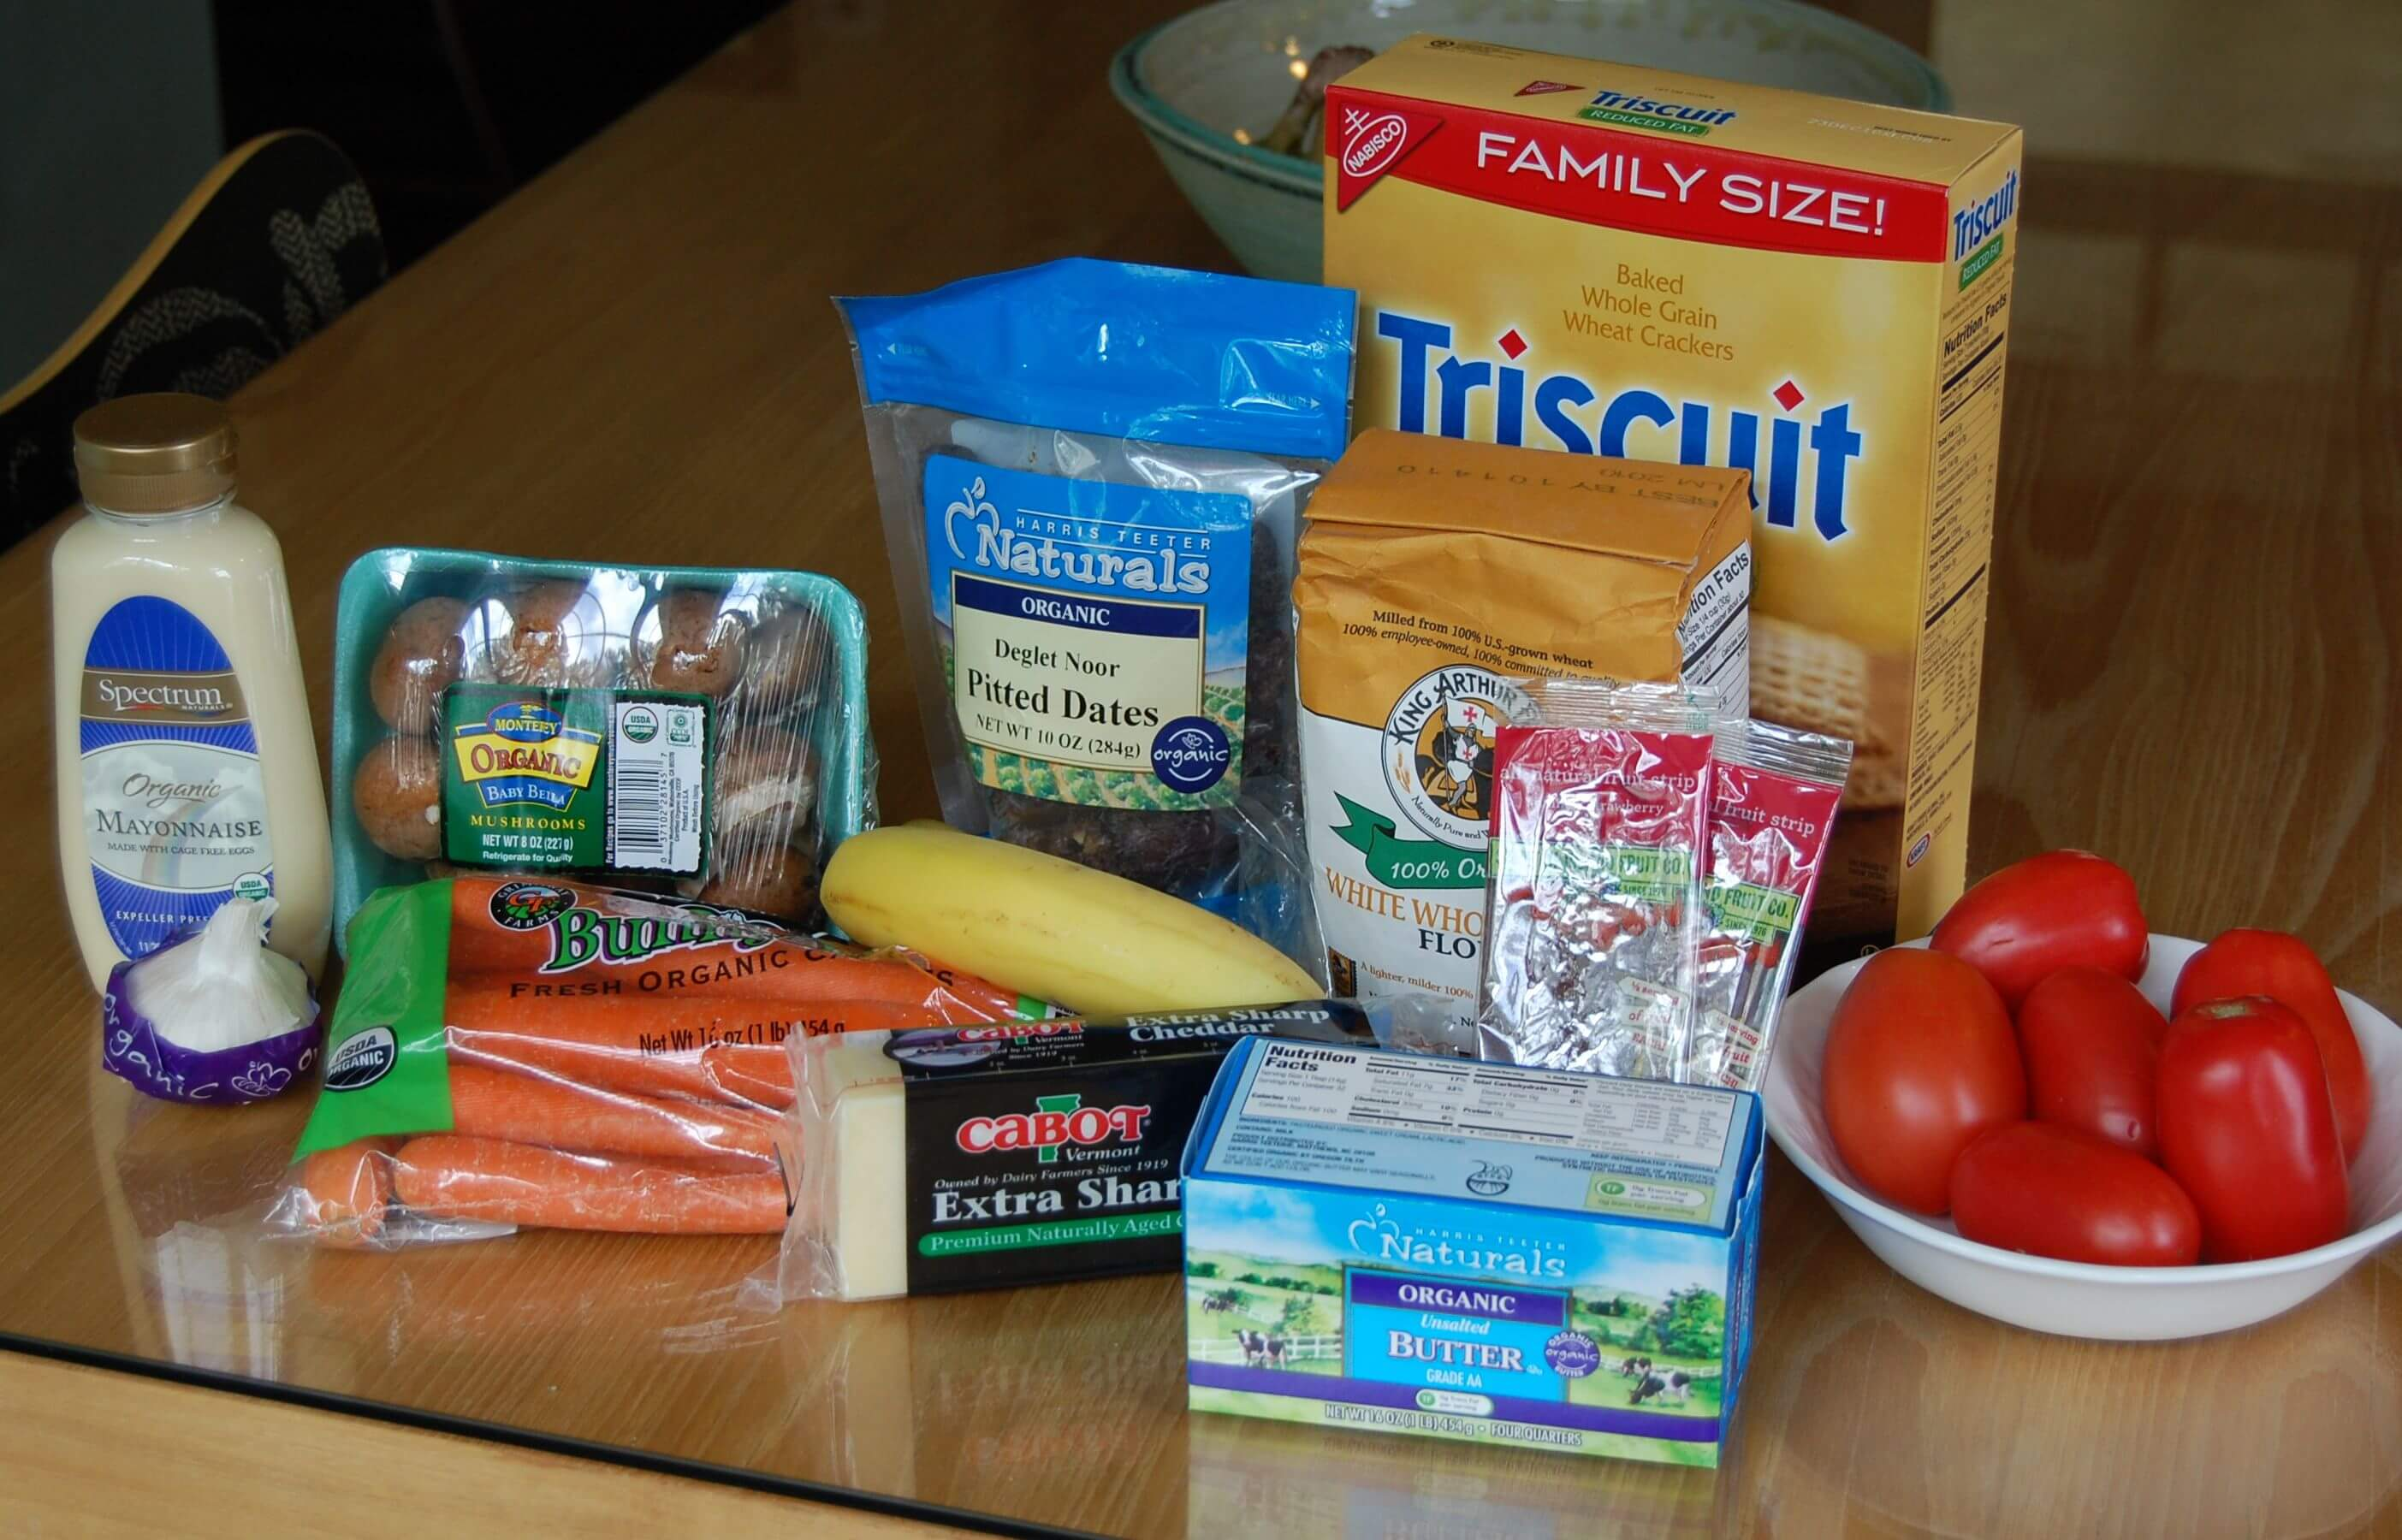 Groceries from Harris Teether that includes mayonnaise, Triscuits, dates, bananas, tomatoes, mushrooms, carrots, garlic, and cheese.